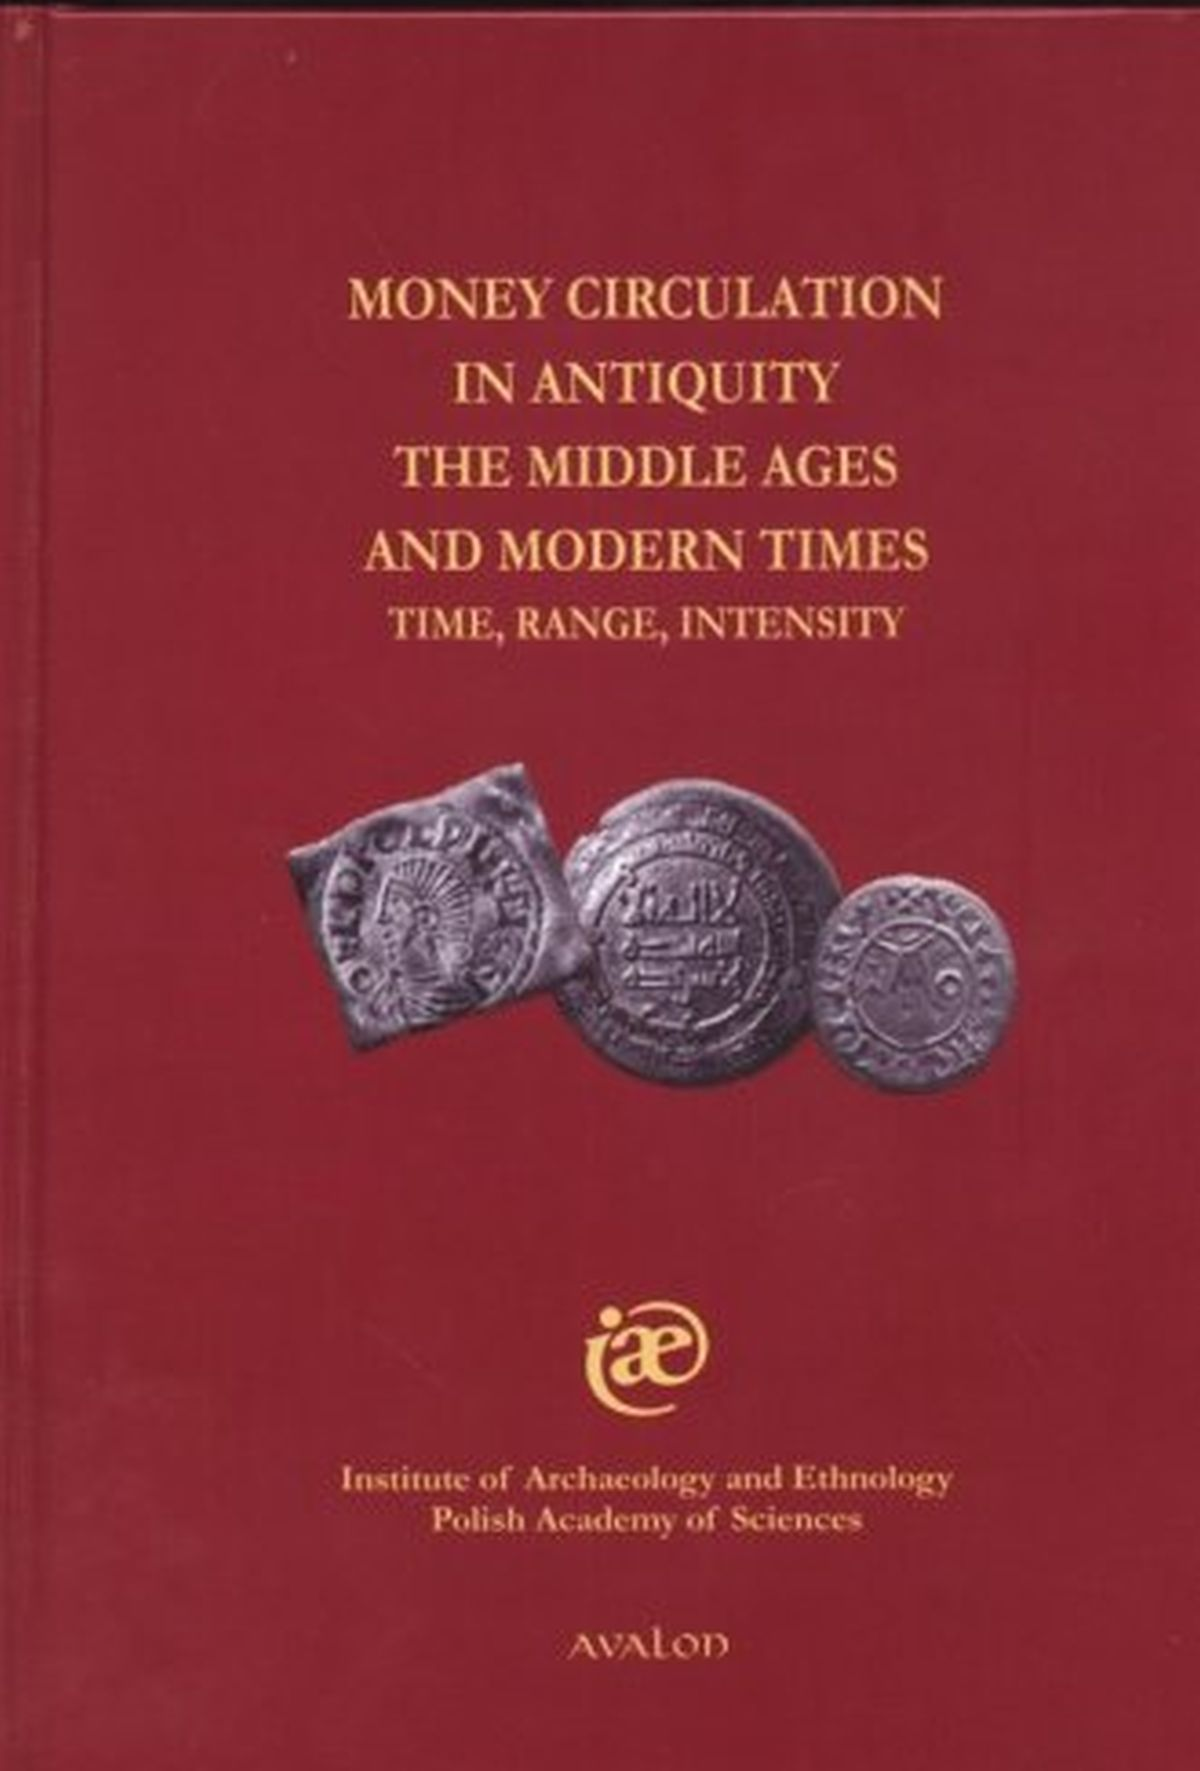 Money circulation in antiquity the Middle Ages and modern times. Time, range, intensity